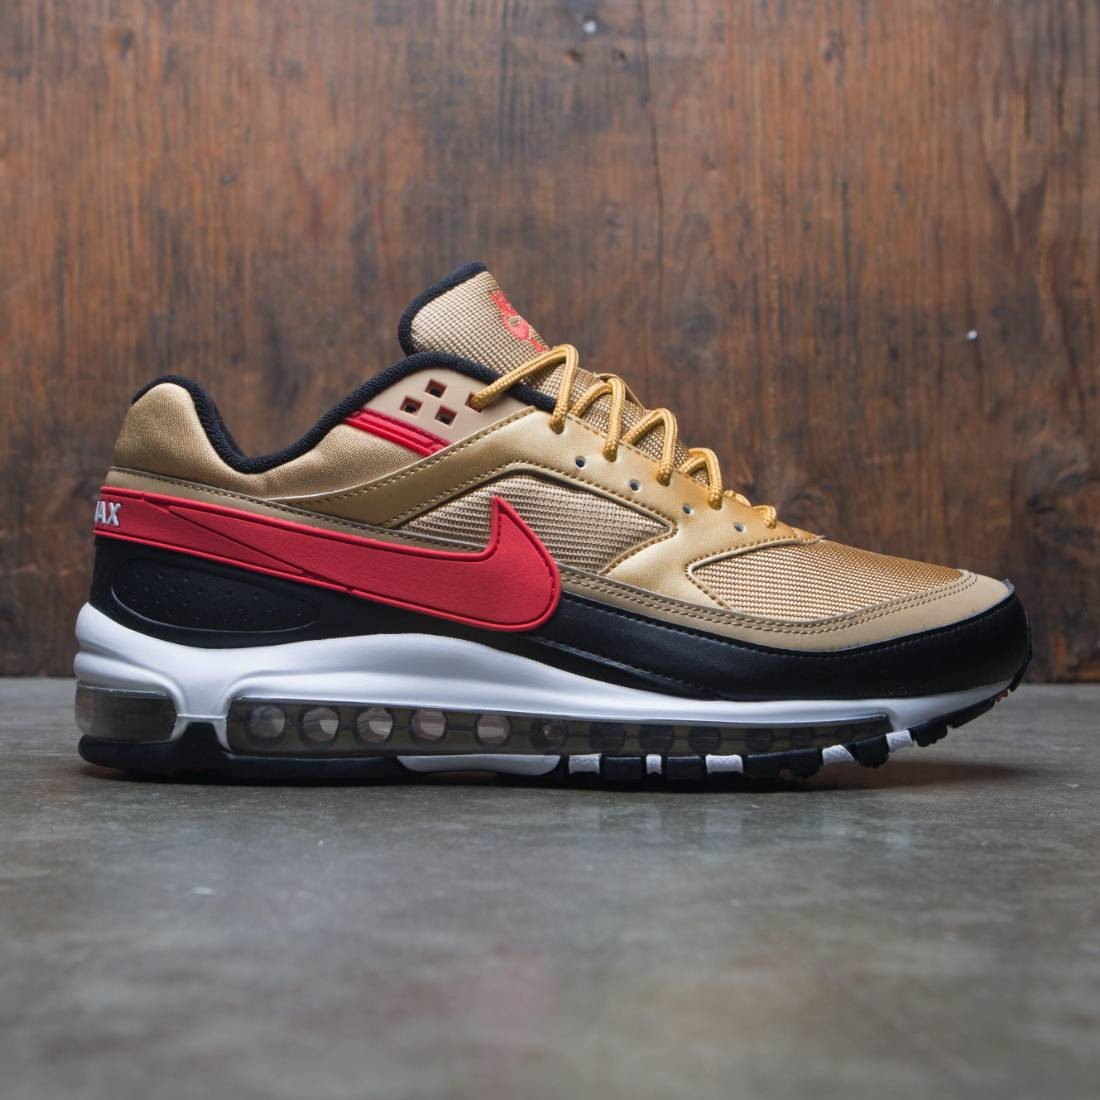 buy online a6acf b62c7 Nike Men Air Max 97 / Bw (metallic gold / university red-white-black)